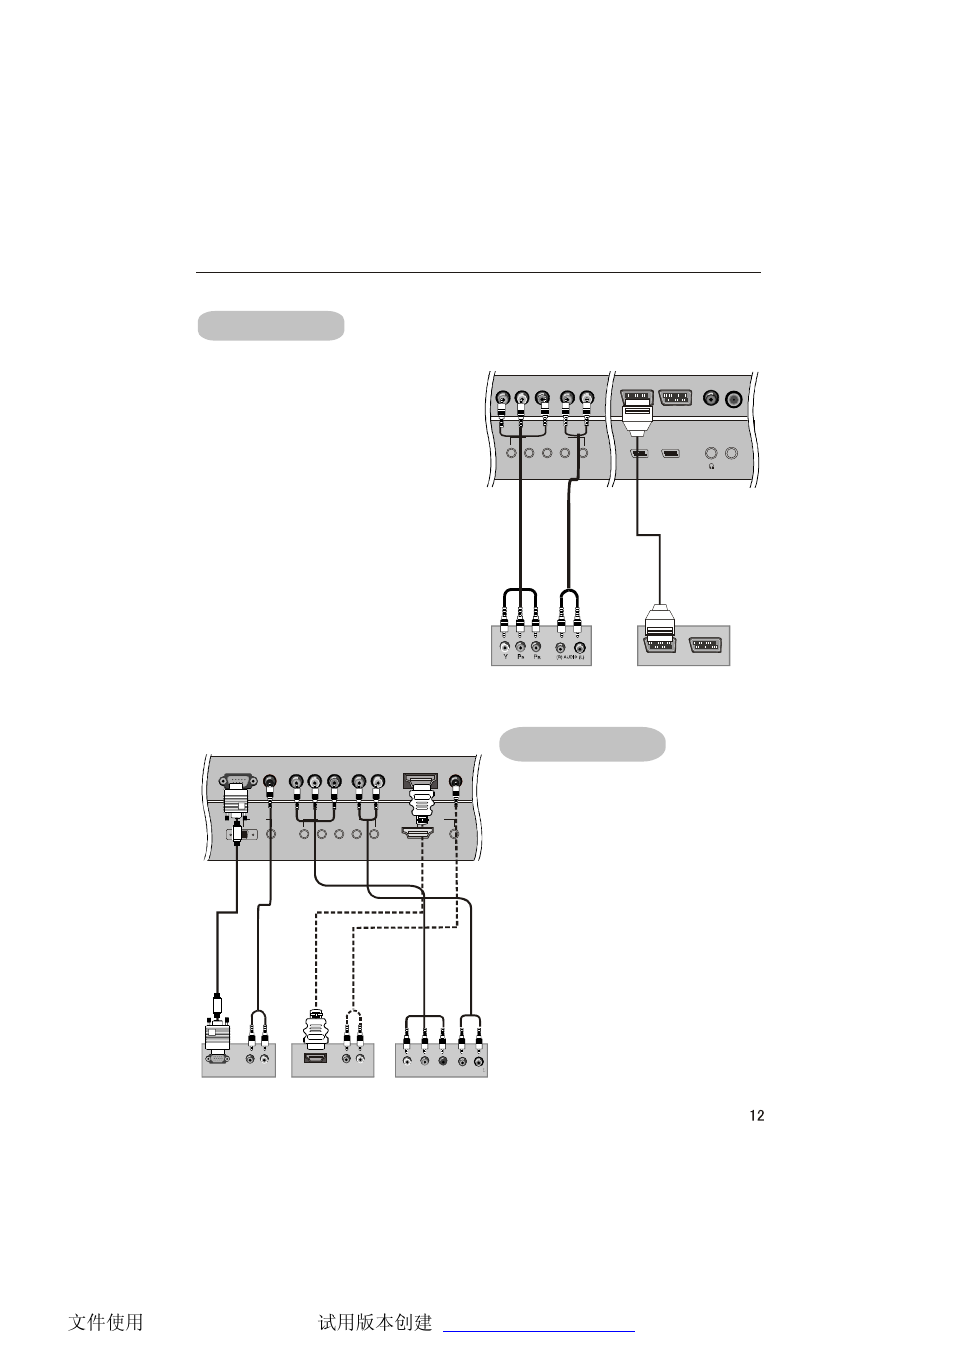 External equipment connections, Dtv connection dvd connection | haier LCD TV  L32A9A User Manual | Page 13 / 47